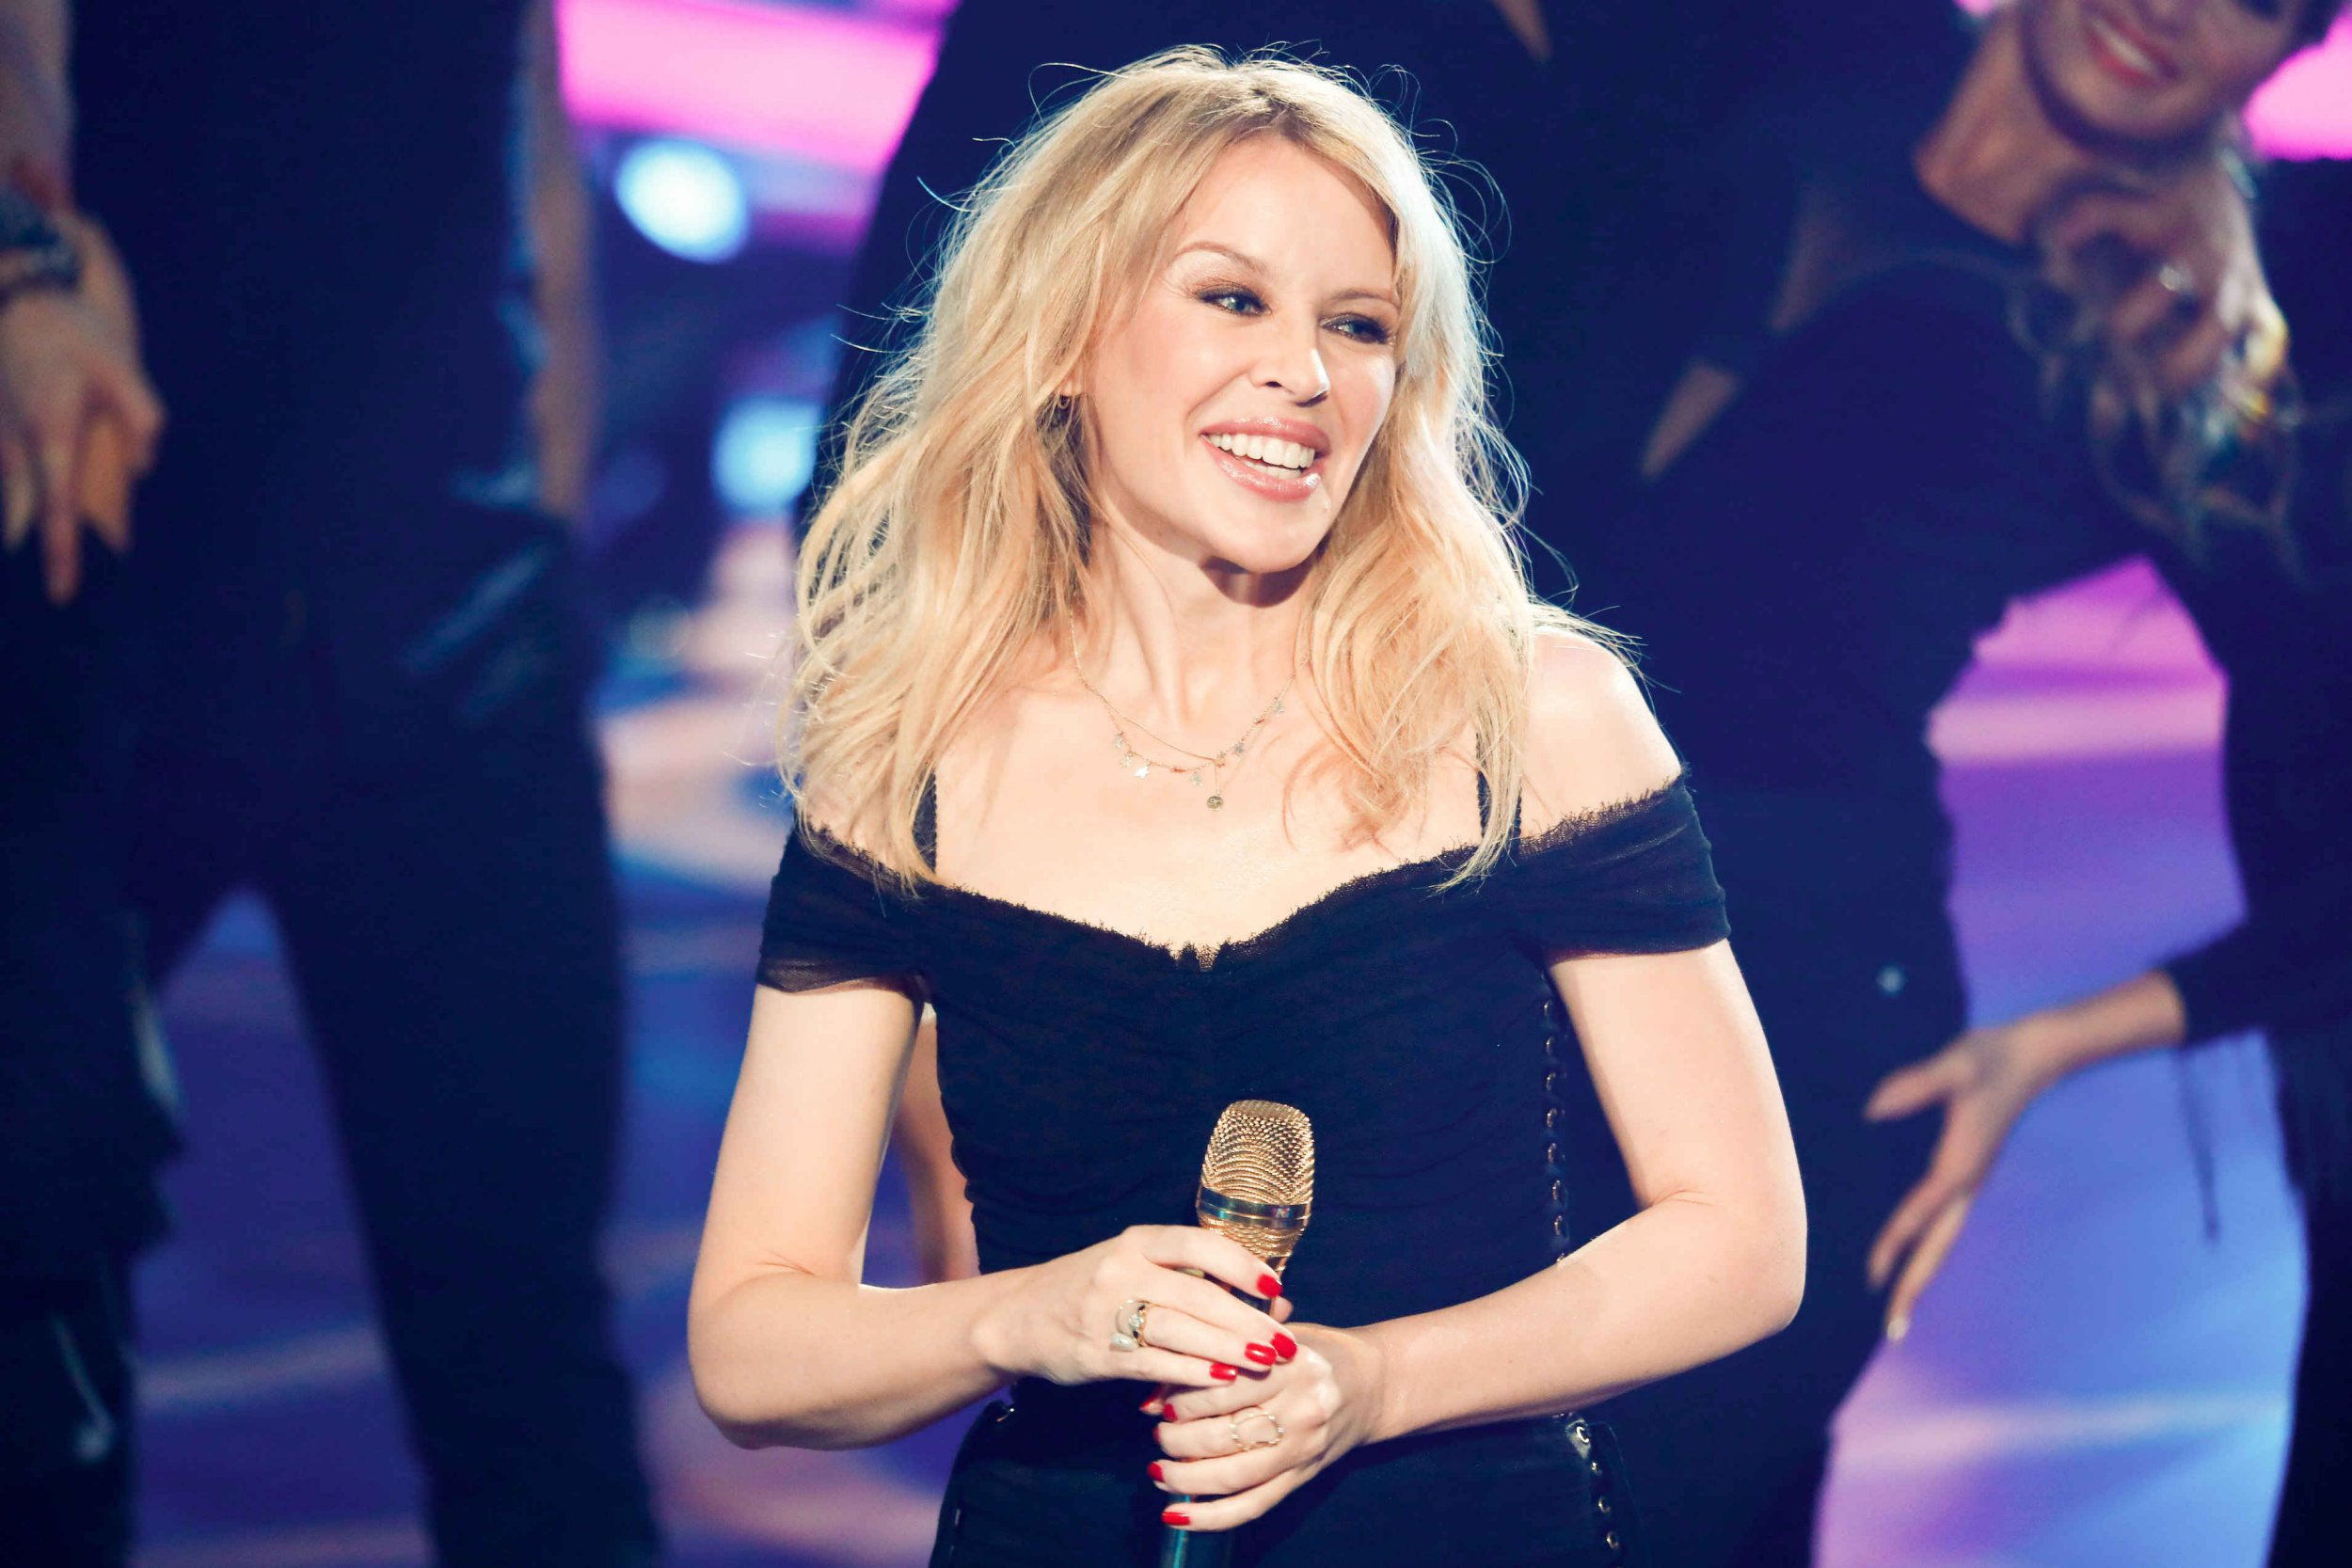 Kylie Minogue concert security 'armed with machine guns' after threat from 'mentally disturbed' man